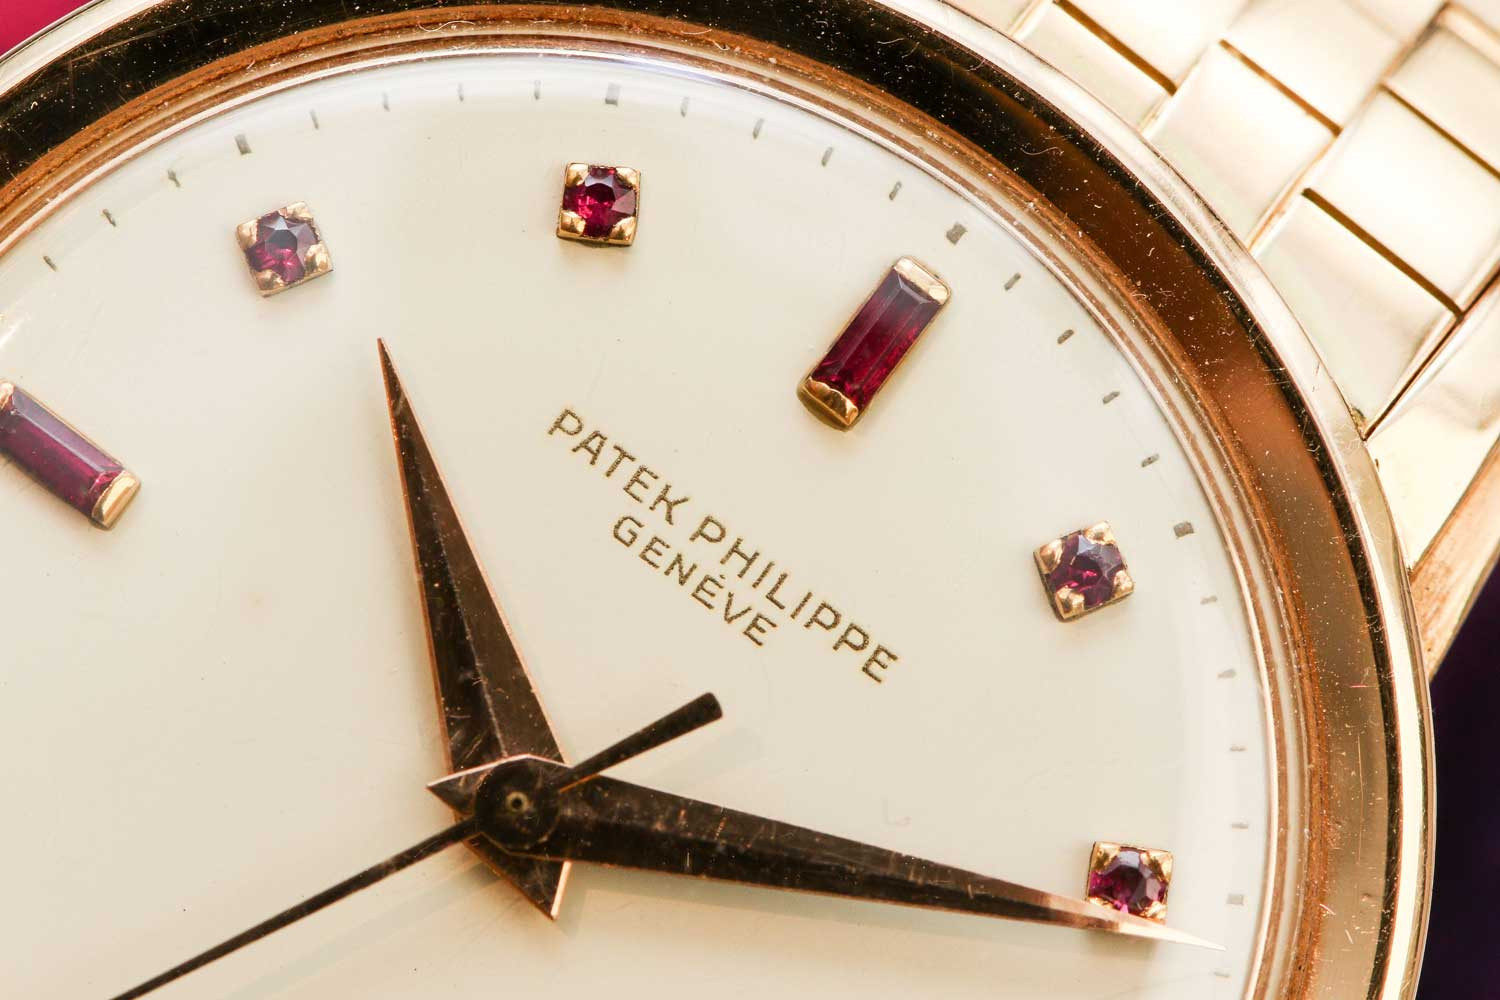 The present example is the only known of this dial type without the portrait of the King of Saudi Arabia (©Revolution)